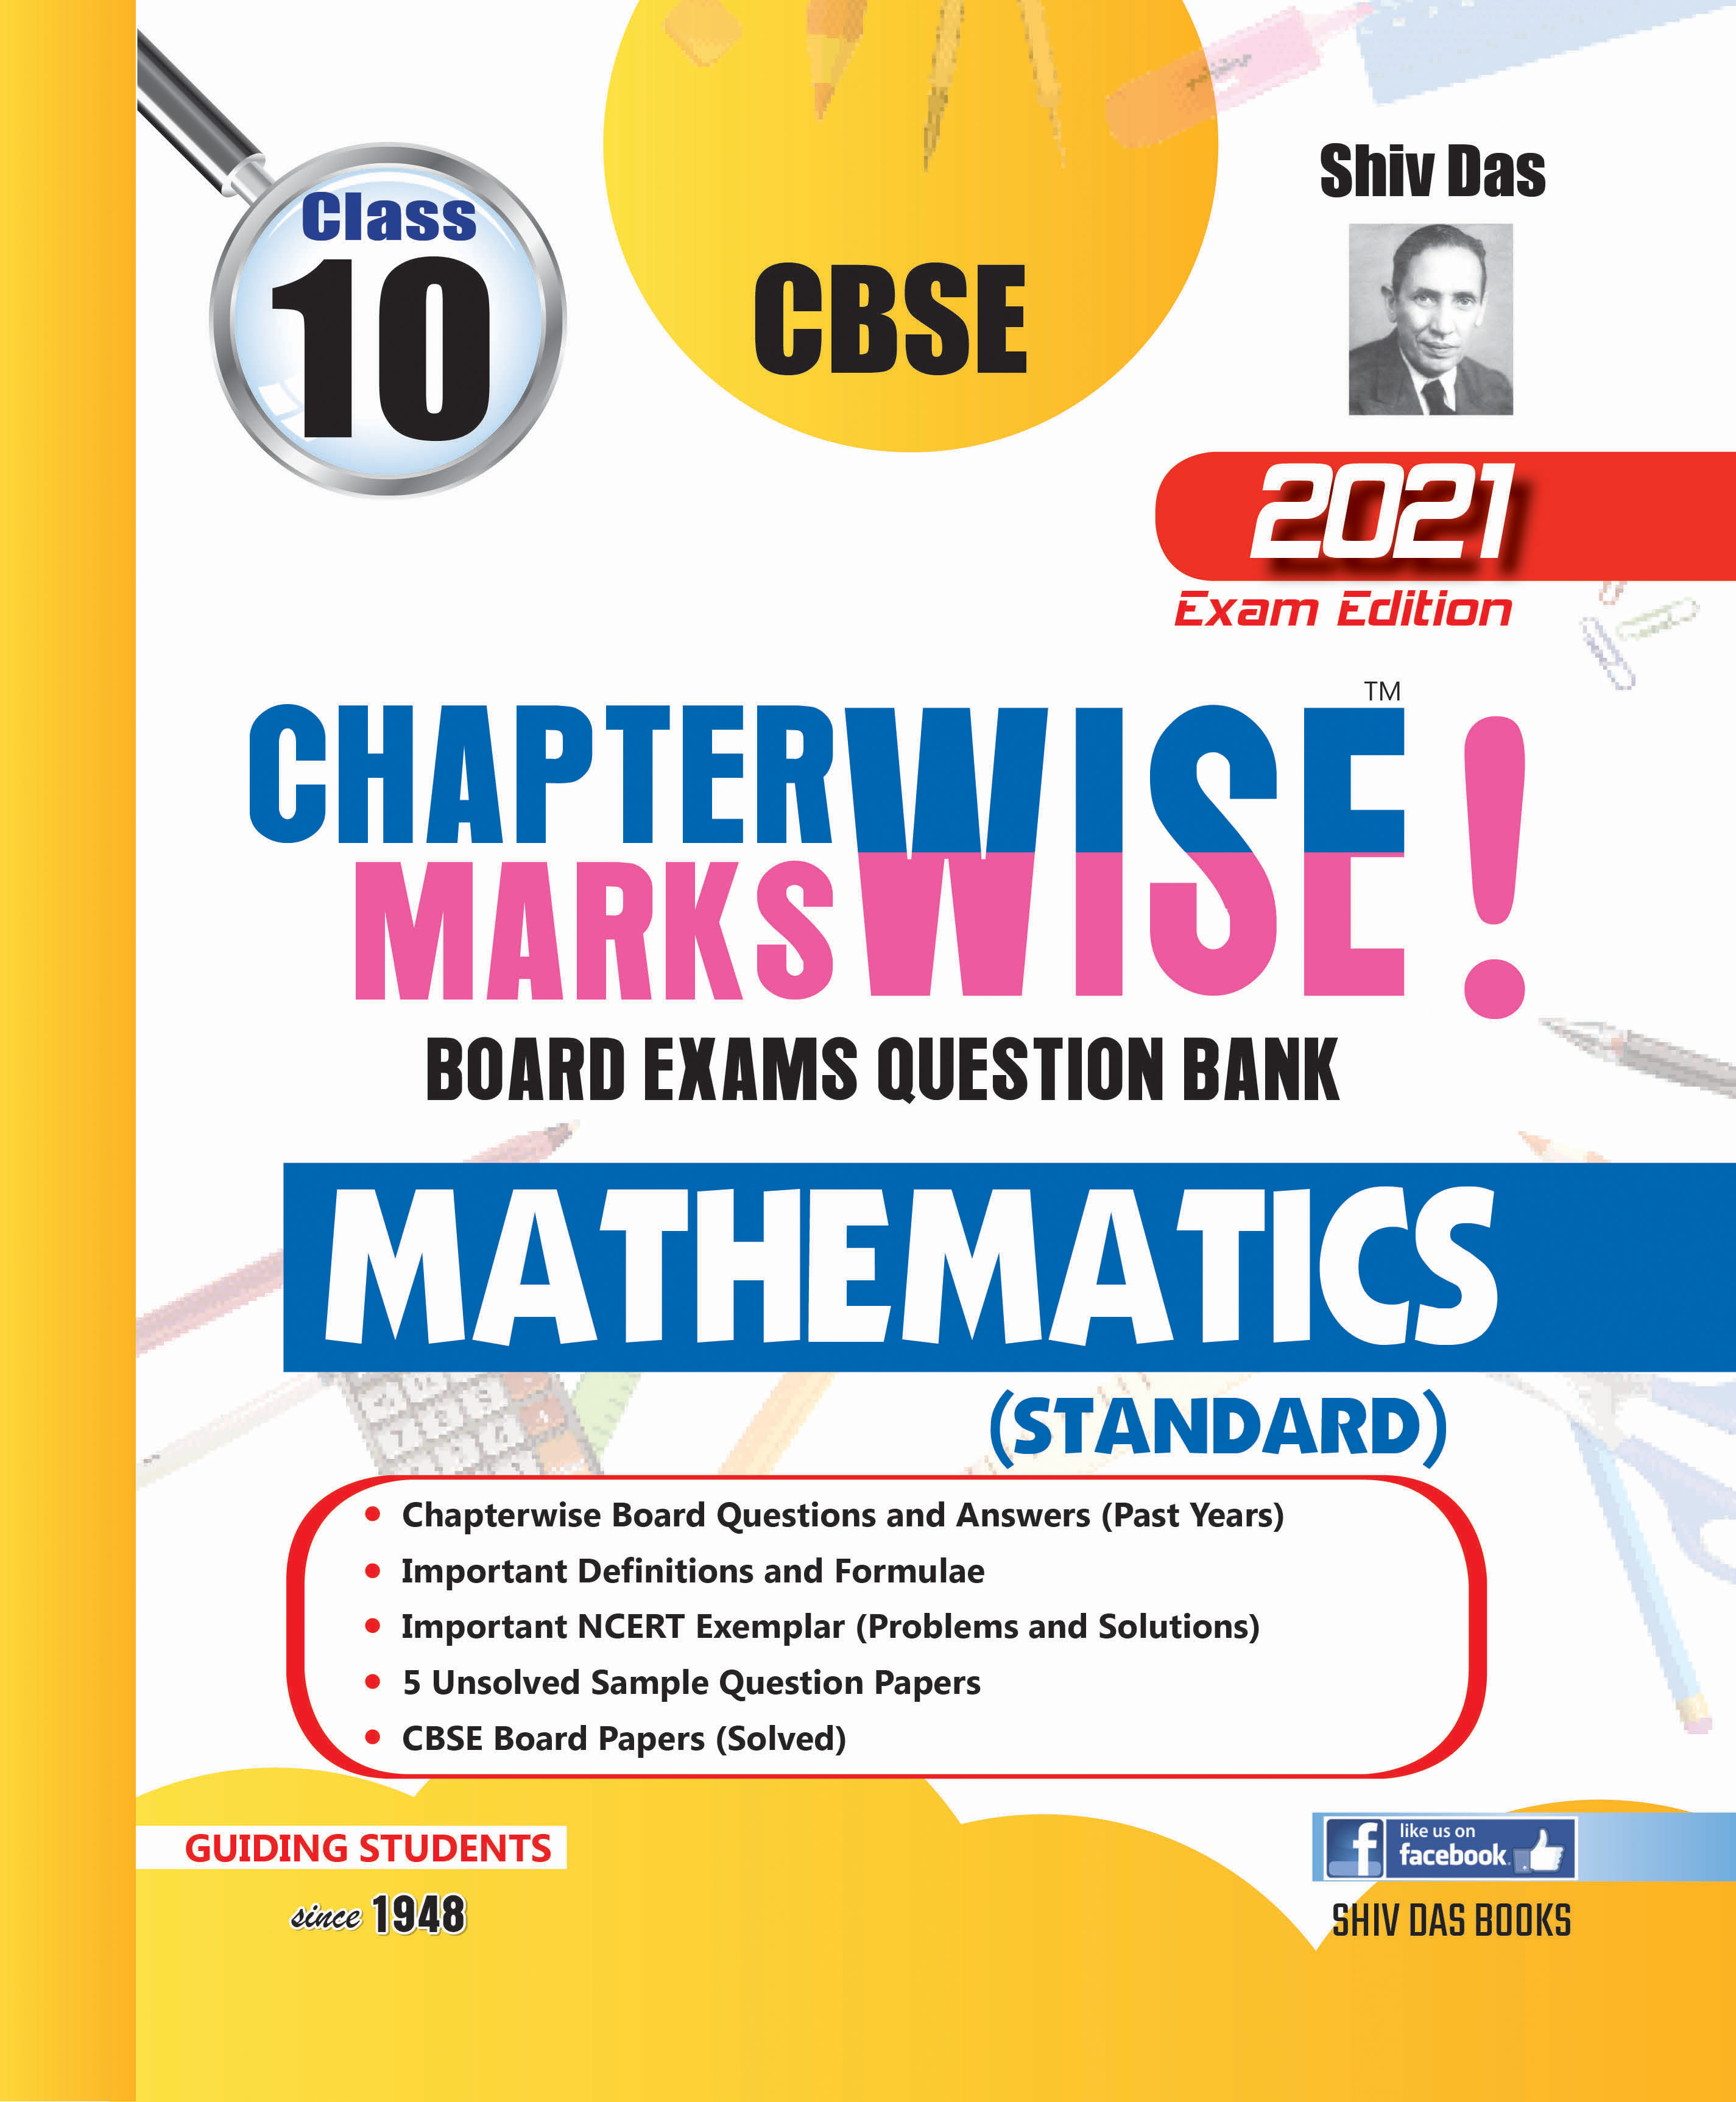 CBSE Chapterwise and Markswise Board Exam Question Bank By SHIVDAS for Class 10 Mathematics (STANDARD) (2021 Board Exam Edition)